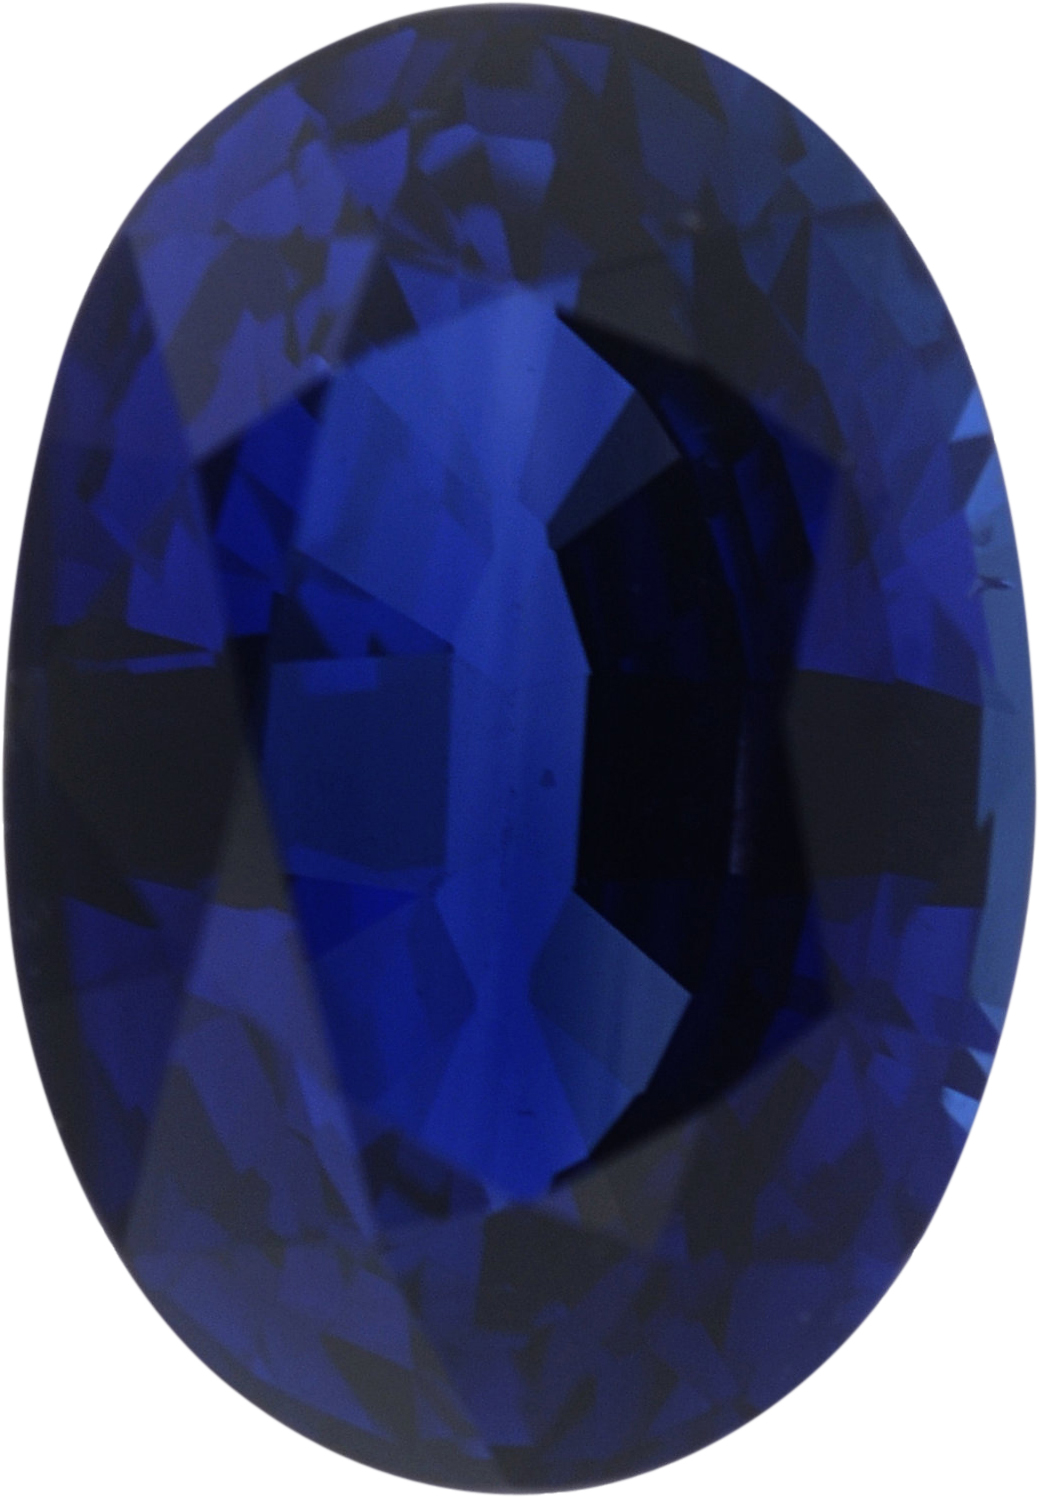 1.69 carats Blue Loose Sapphire Gemstone in Oval Cut, 8.05 x 5.64 mm